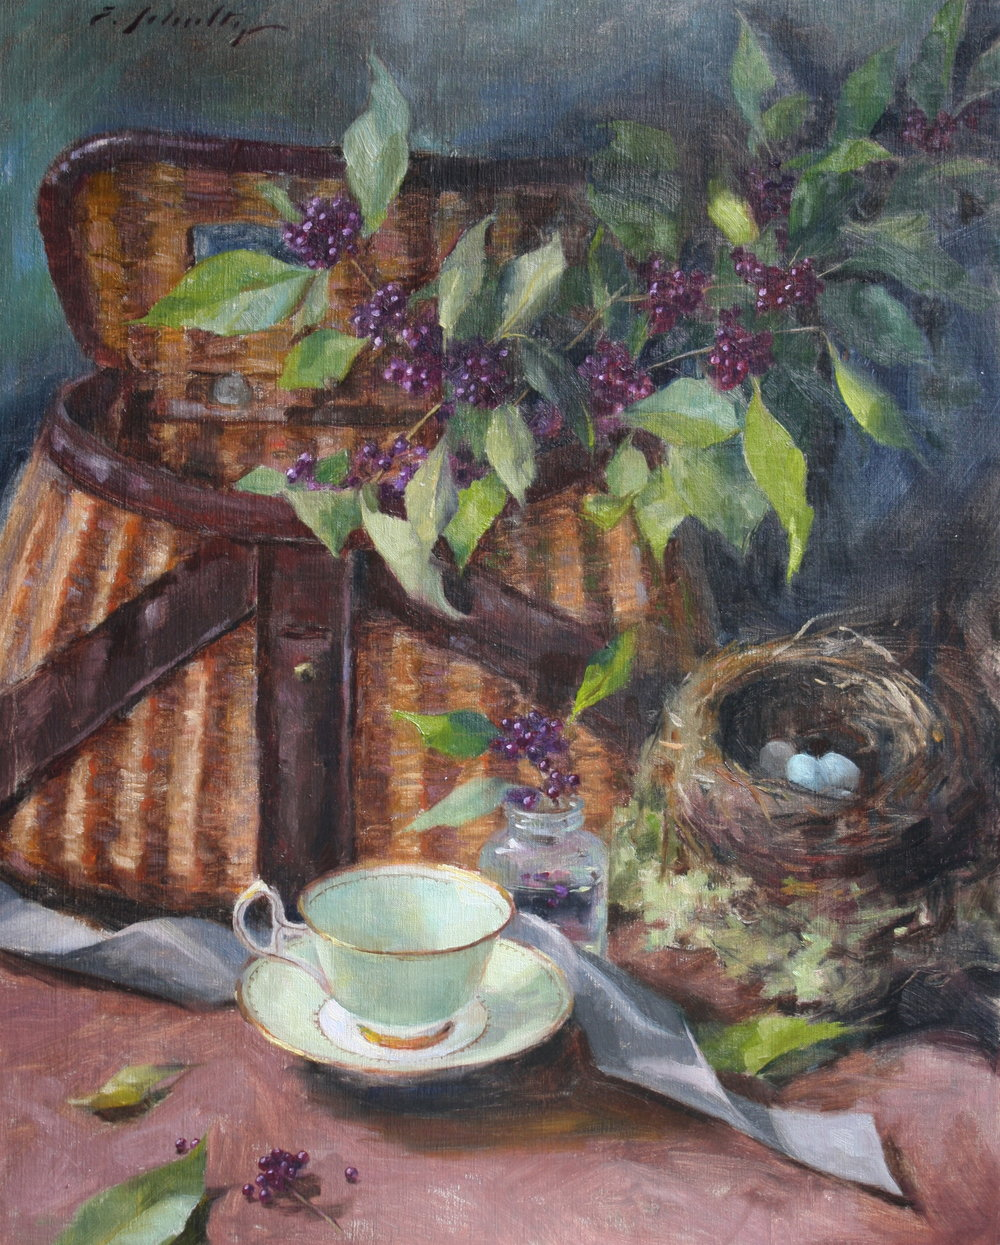 """Creel Basket with Berries"" 16x20 $850"